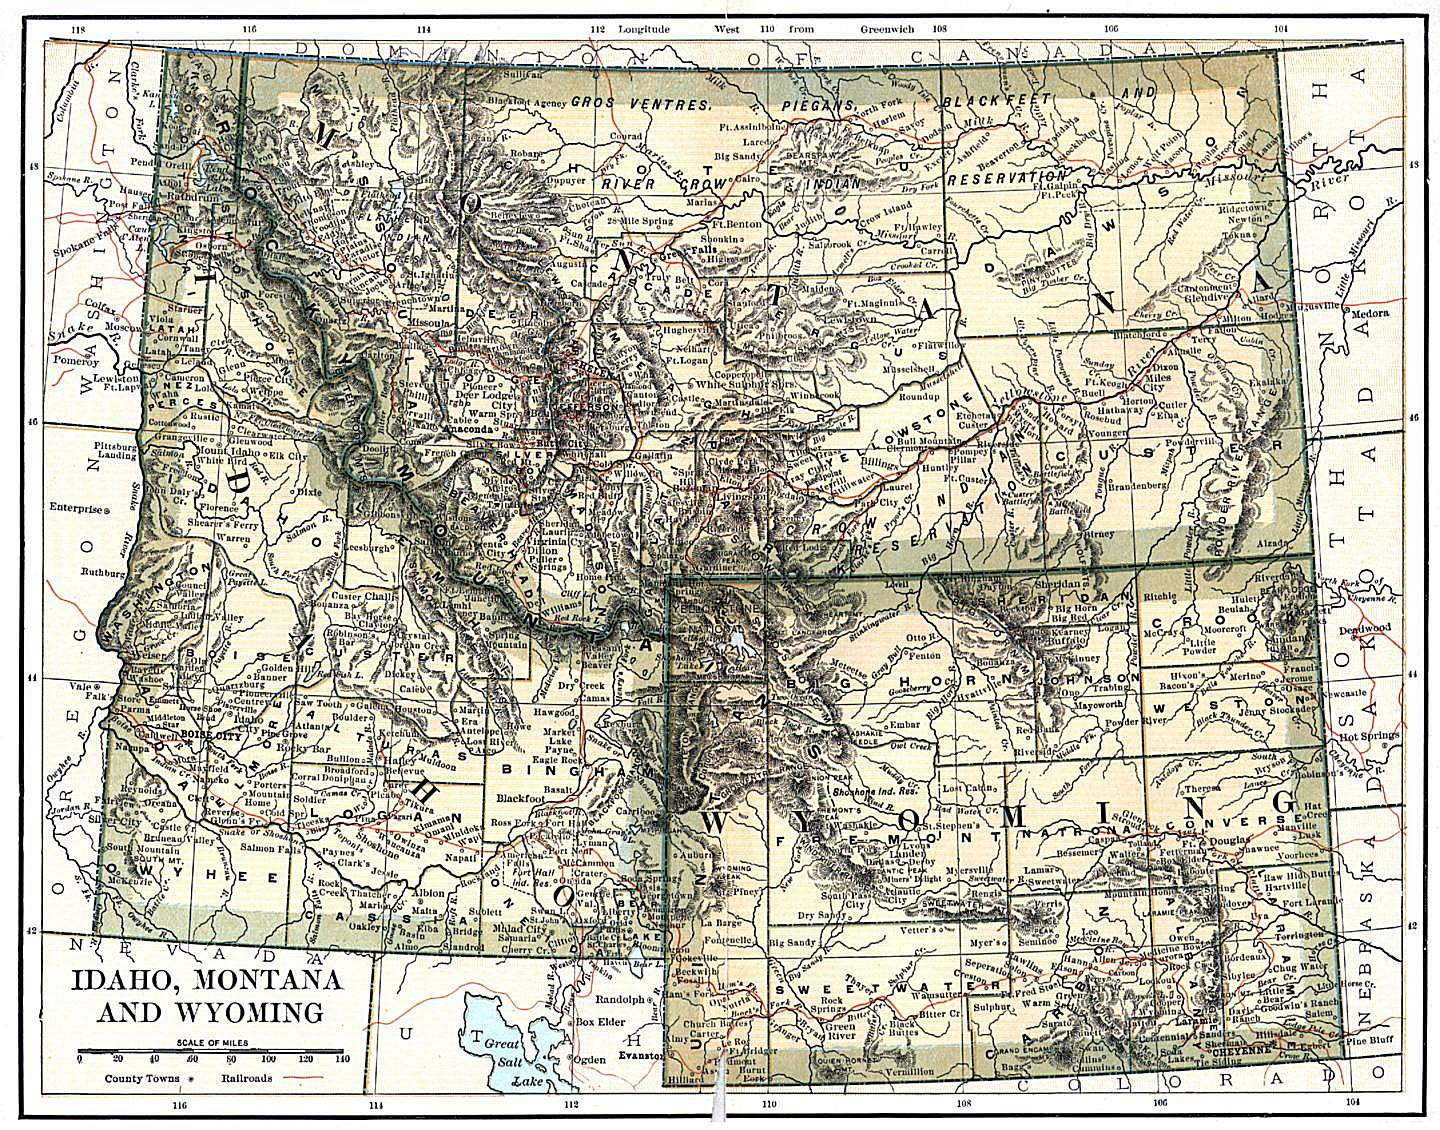 United States Digital Map Liry - About on map of idaho balanced rock, map showing counties of idaho, map of idaho showing cities, map of idaho and montana, map of great basin usa, map of madison usa, map of sandpoint idaho and surrounding area, map of rocky mountains in idaho, map of osburn idaho, map of southern idaho, map of tensed idaho, map of jamaica usa, map of idaho capitol building, driggs idaho map usa, map of state of washington usa, map of northern idaho, map of idaho state, map of northwest territory usa, map of san antonio usa, map of idaho college,